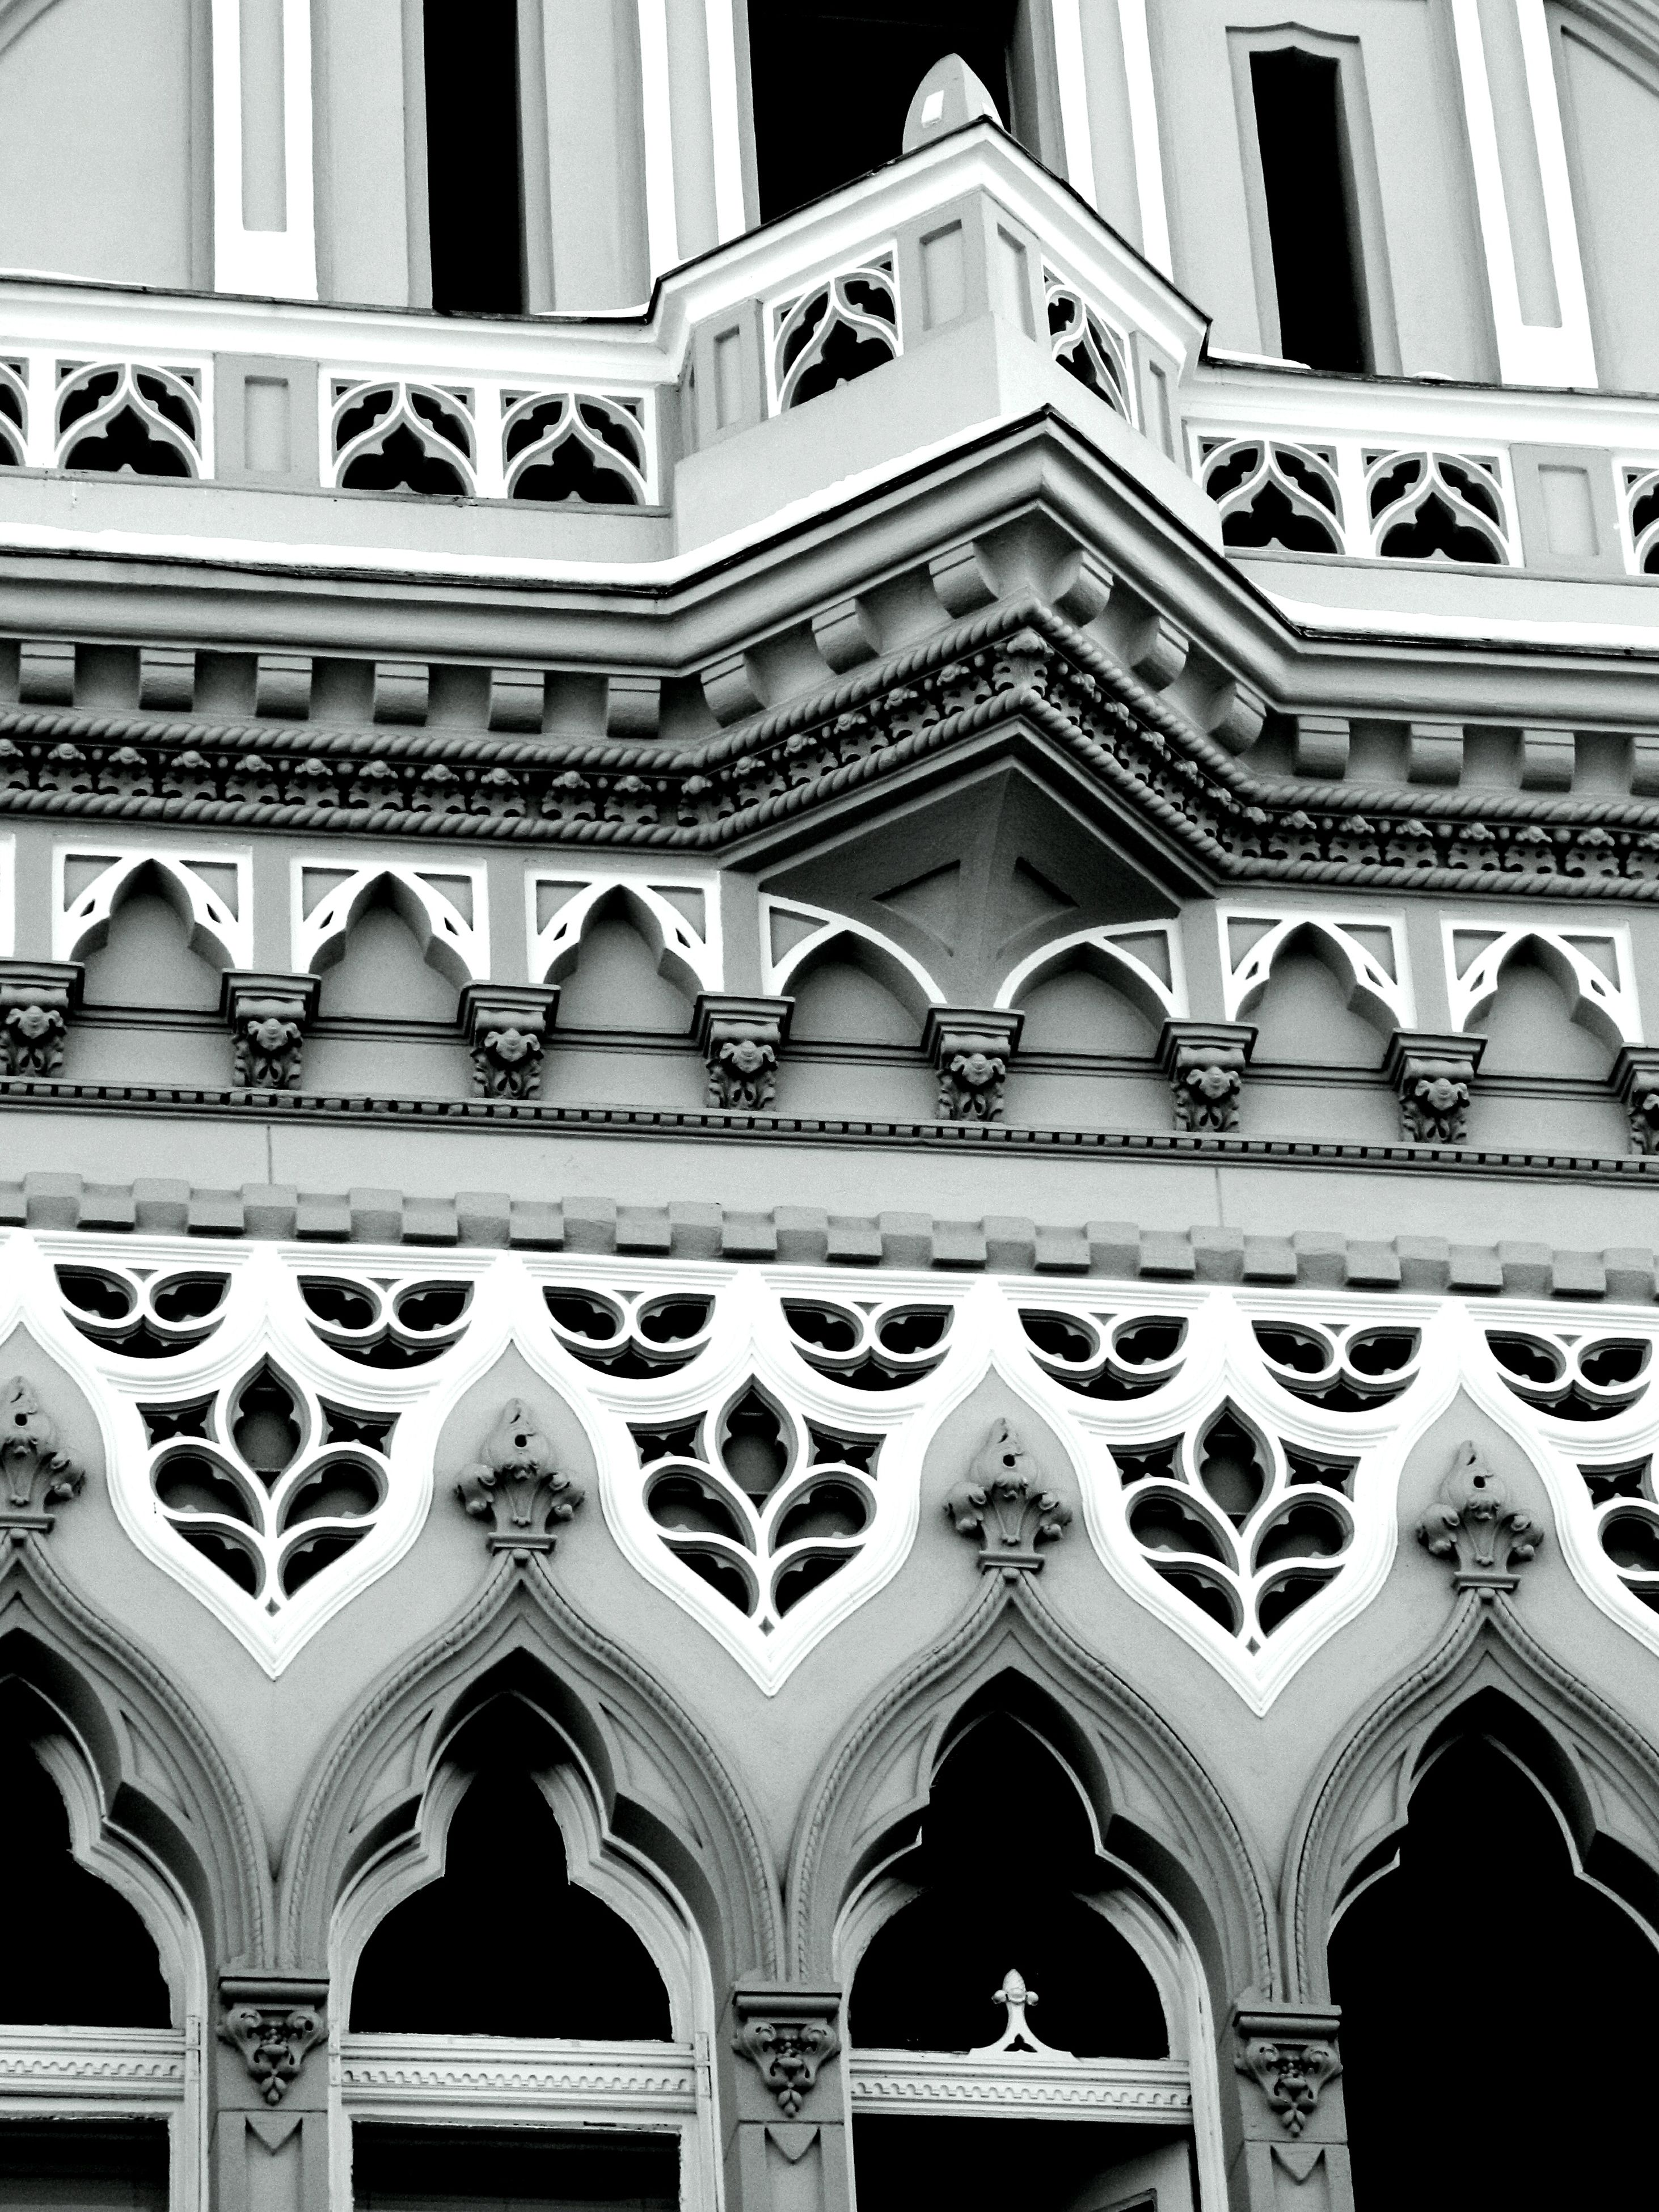 architecture, built structure, building exterior, low angle view, arch, window, ornate, design, pattern, repetition, architectural feature, history, facade, building, no people, in a row, day, full frame, famous place, travel destinations